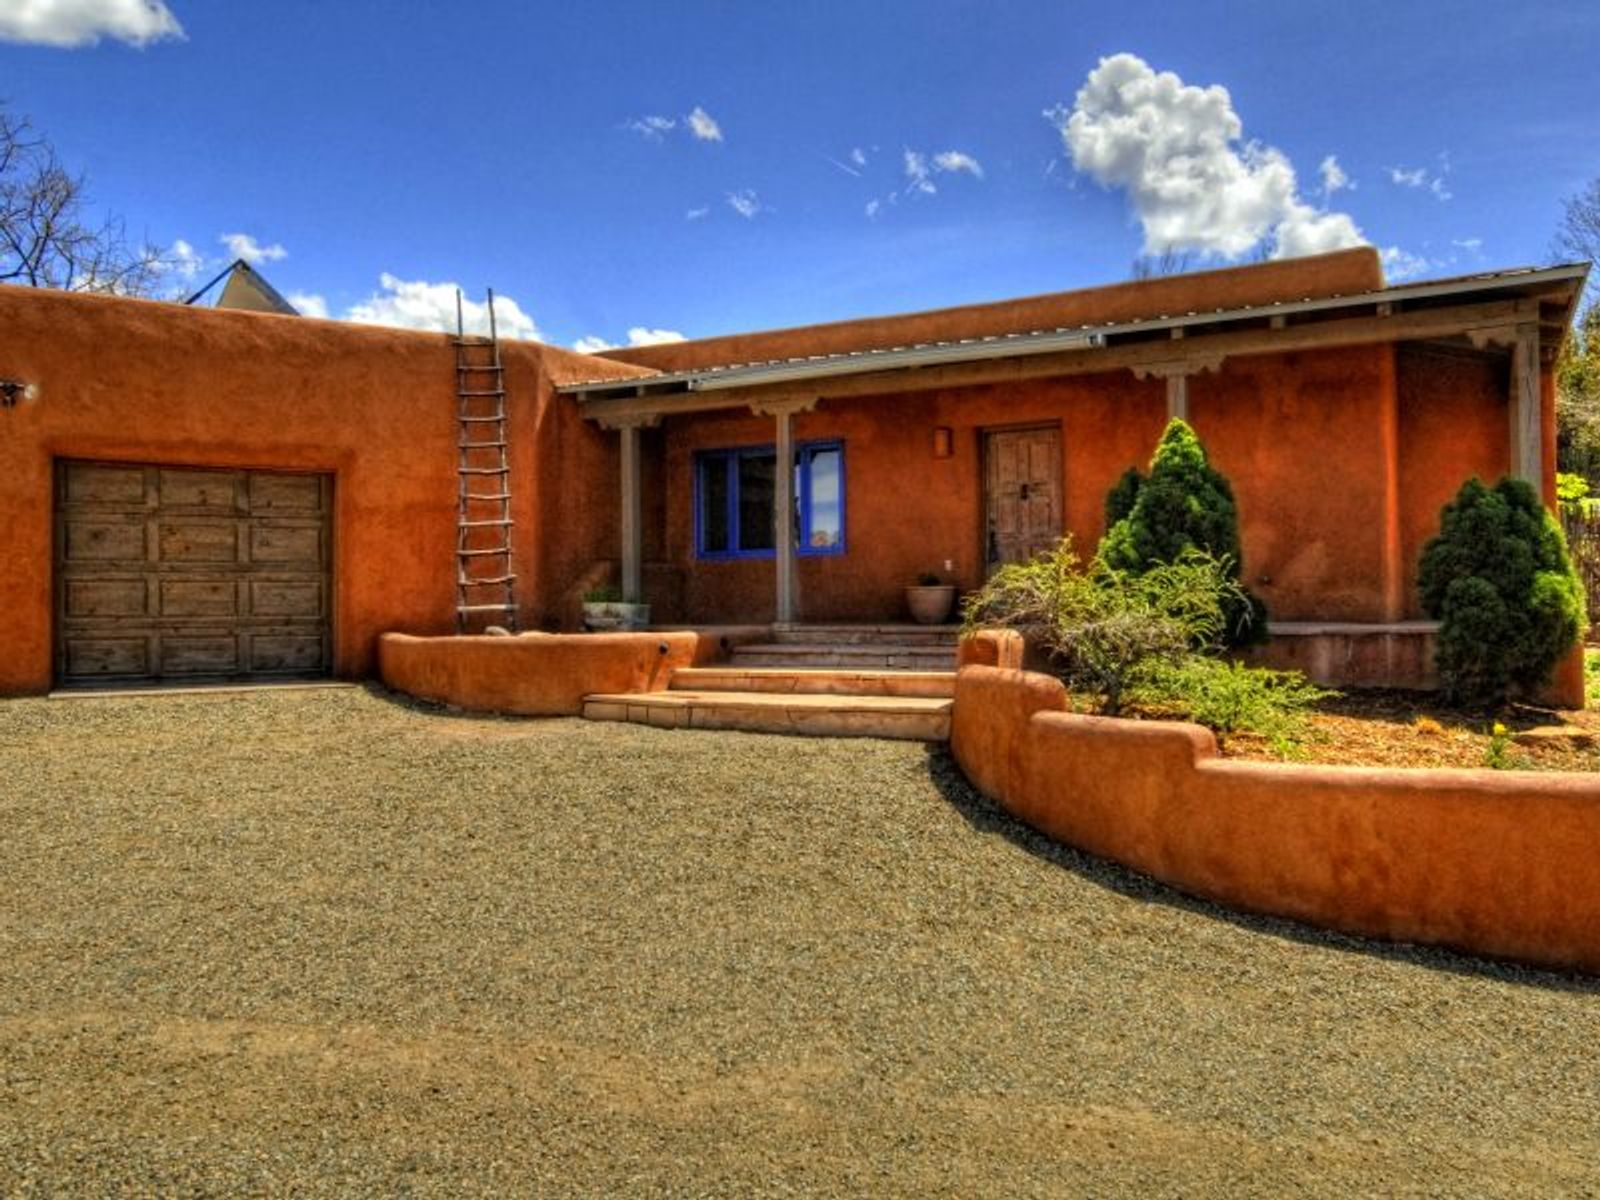 65 Vista Redonda, Santa Fe NM Single Family Home - Santa Fe Real Estate